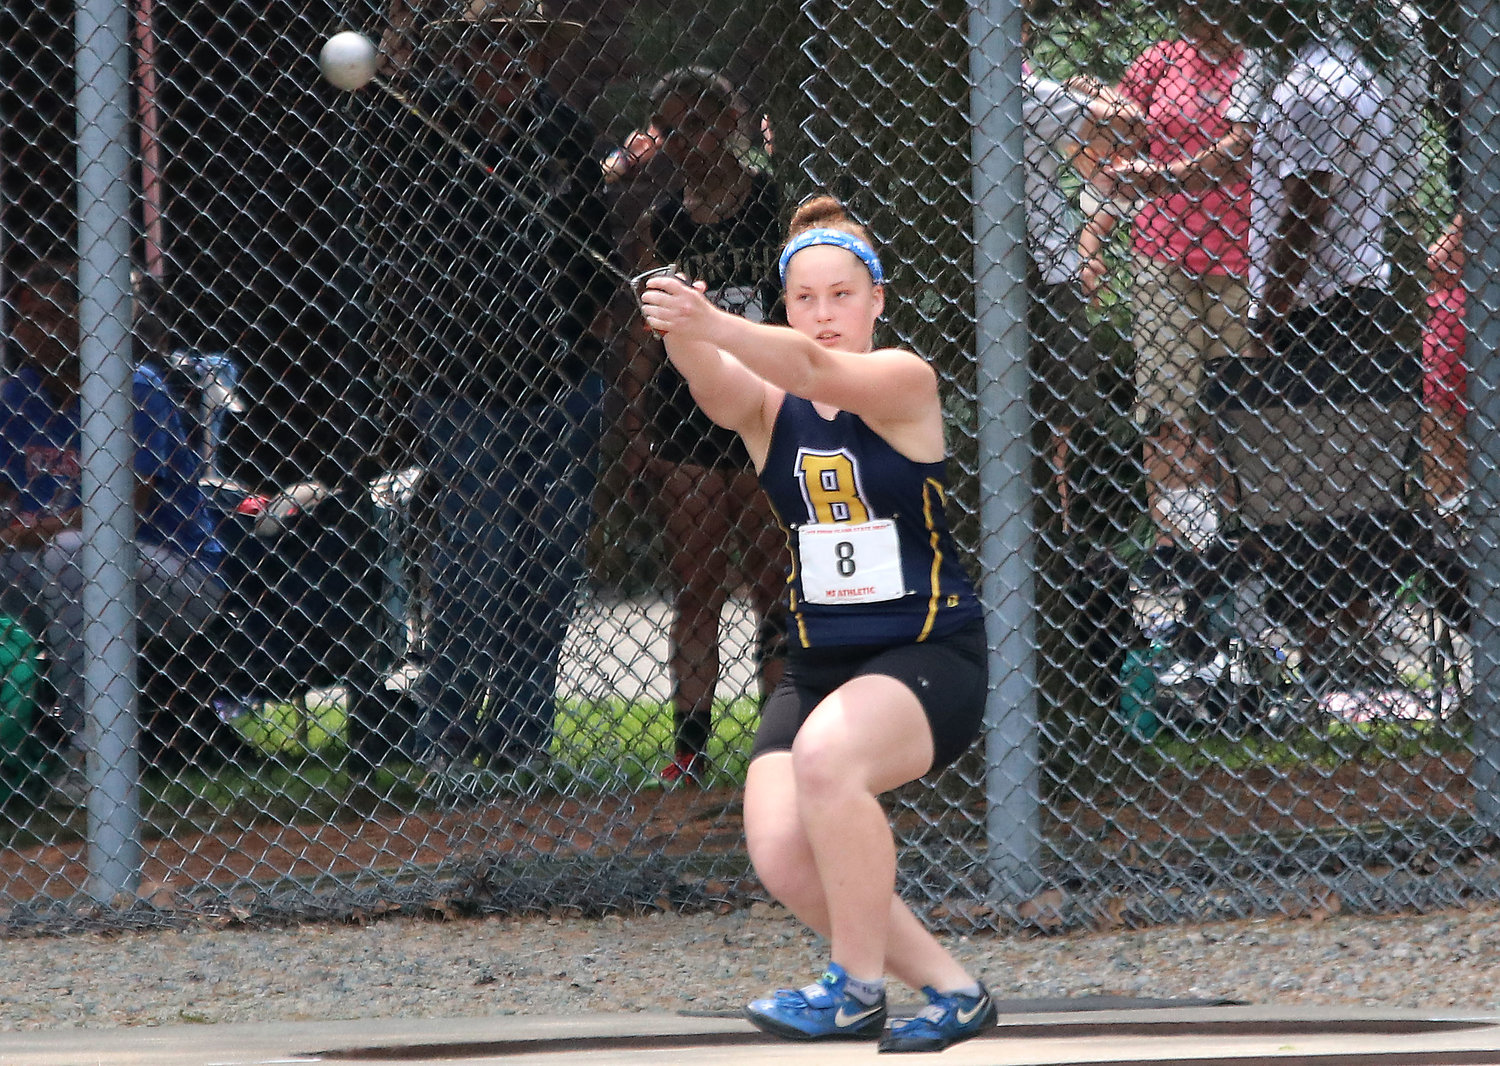 Annika Kelly, shown competing at the state track meet, was recently named Gatorade RI Girls Track and Field Athlete of the Year.